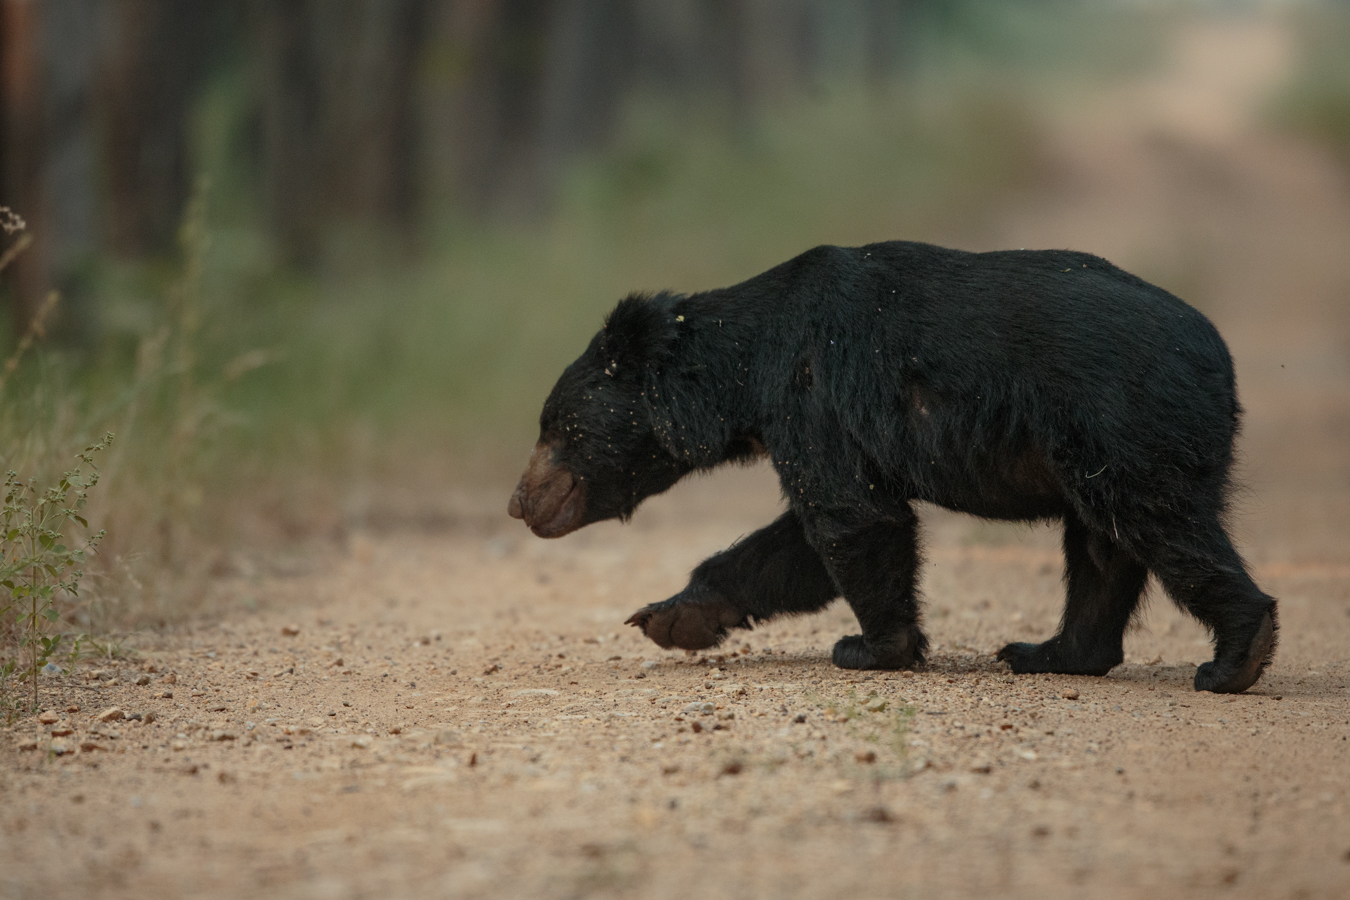 A sloth bear, 400mm f2.8, 1DX